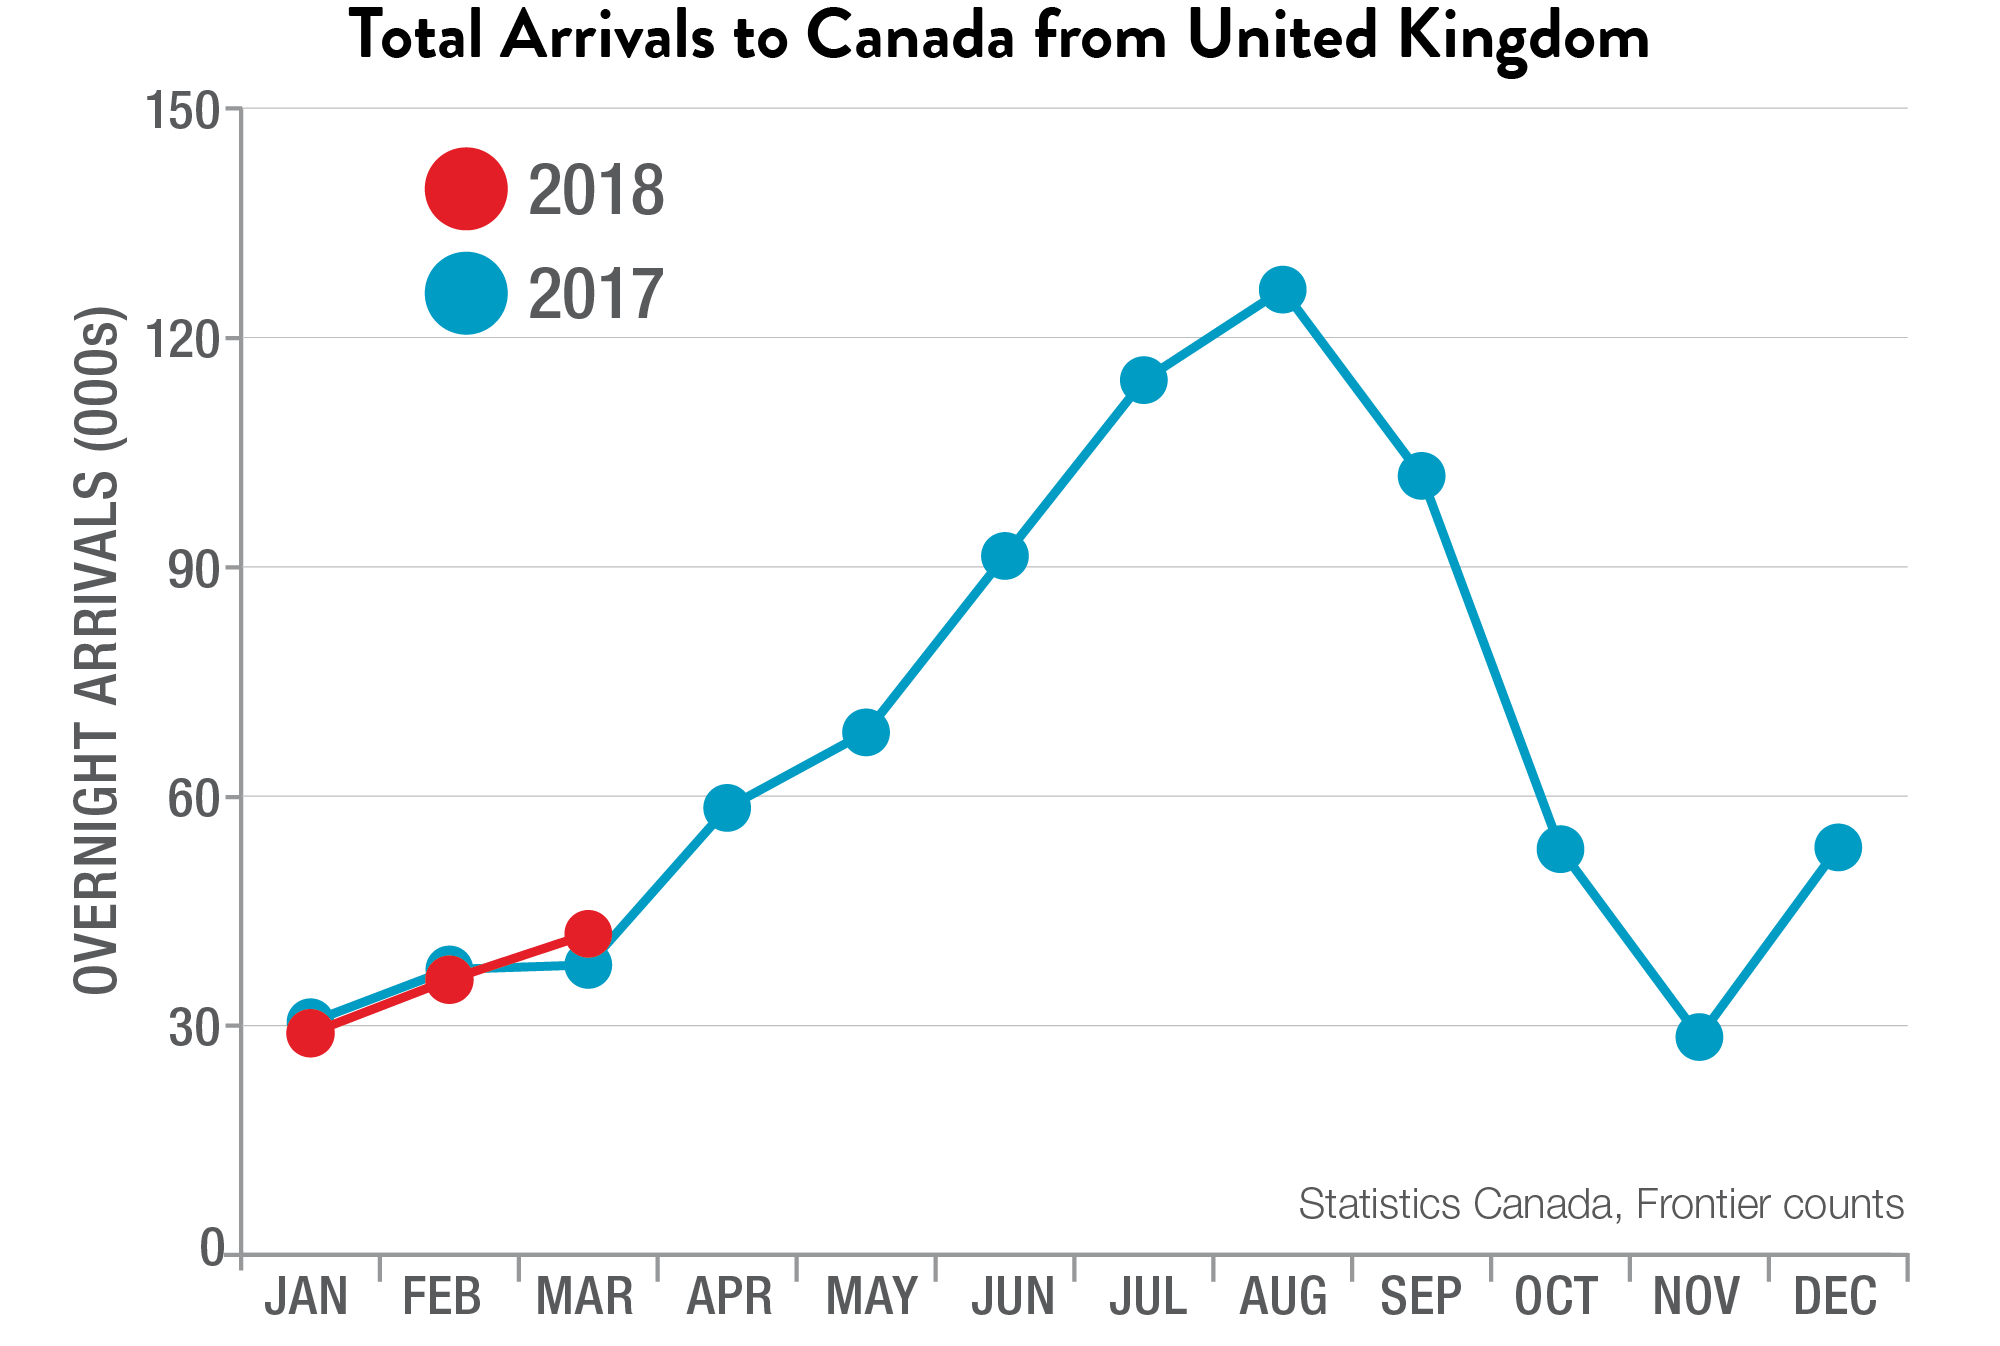 Total Arrivals to Canada from the United Kingdom